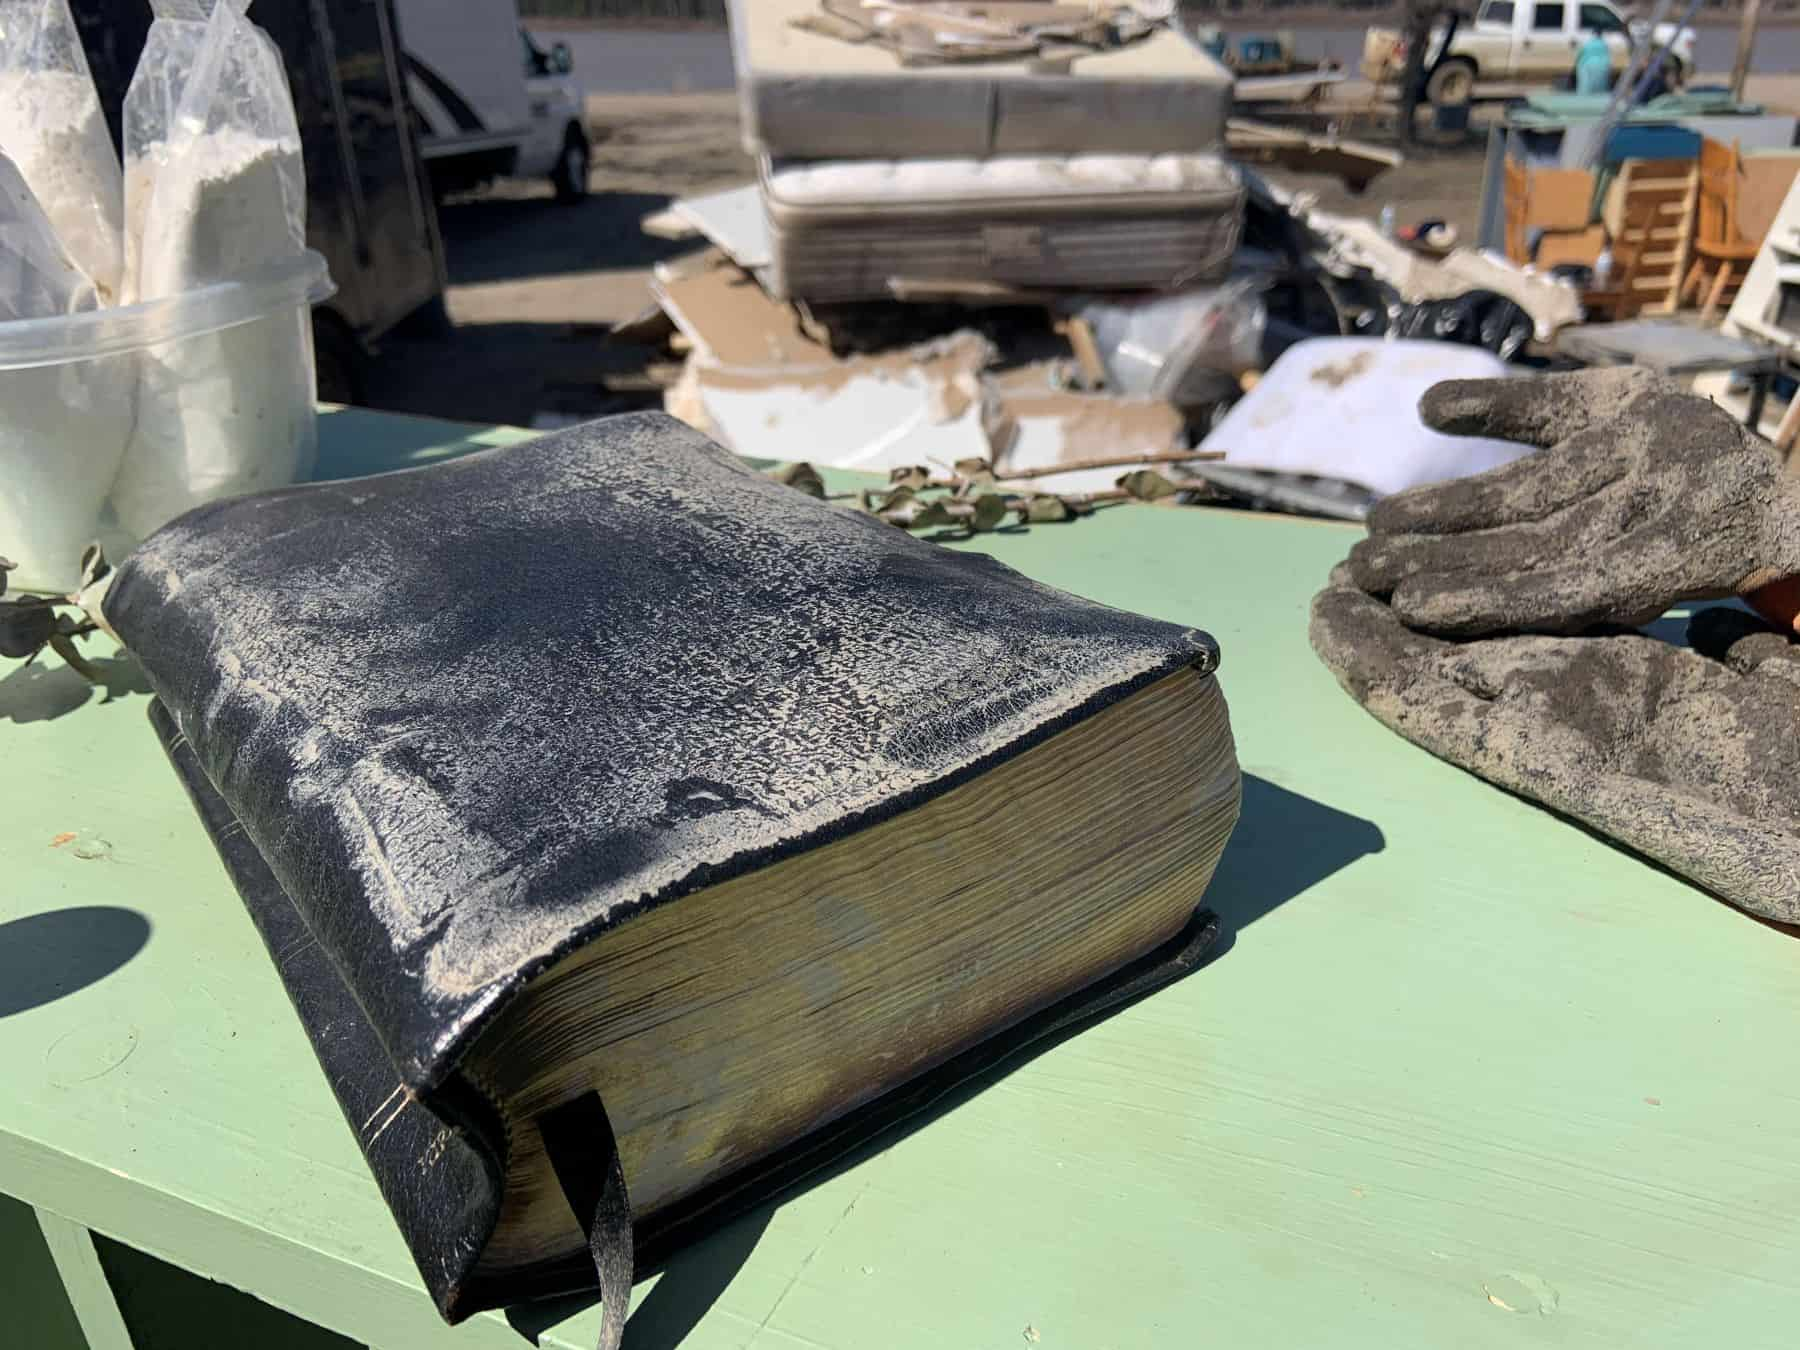 A Bible was found among the flood-damaged items in Fort Vermilion.